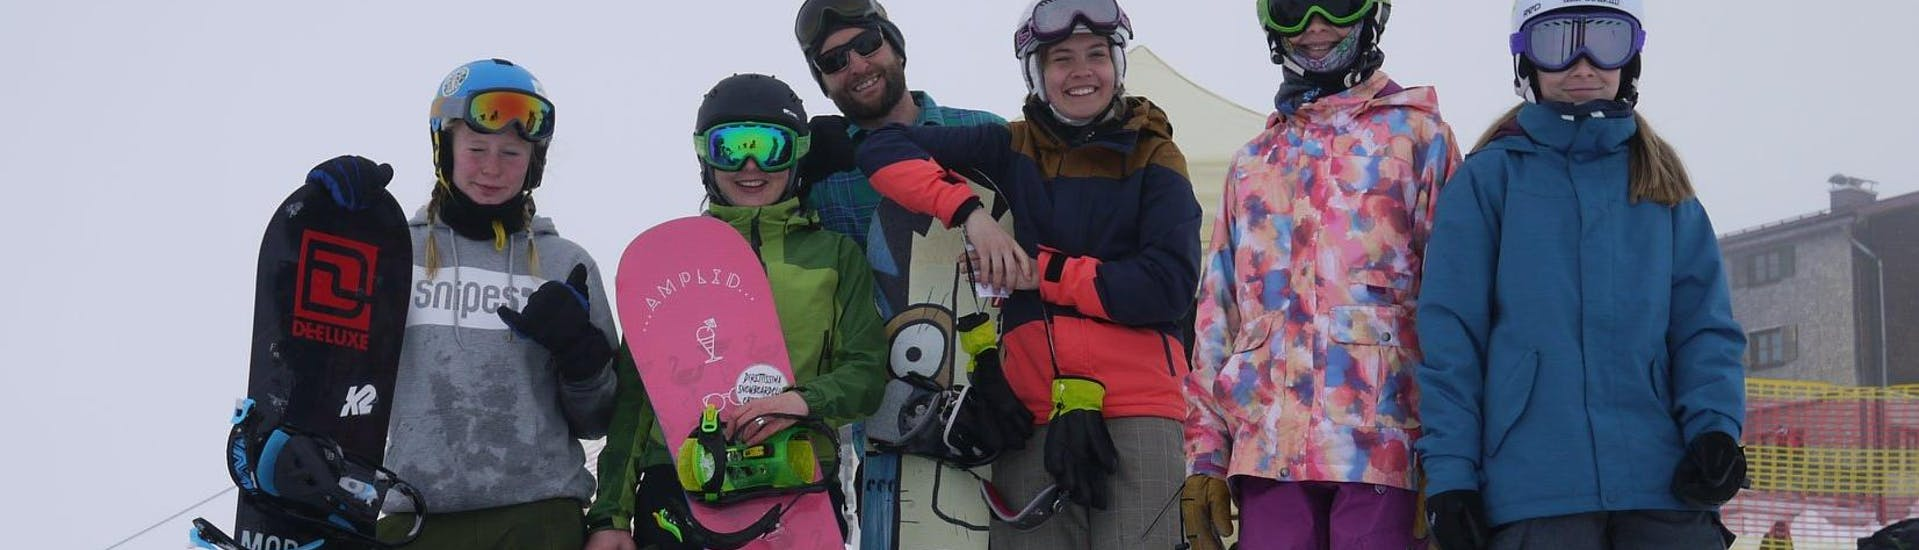 Happy participants of the Private Snowboarding Lessons for Kids & Adults - All Levels are taking pictures to capture the great time spent in the school Out of Bounds Snowboard School.